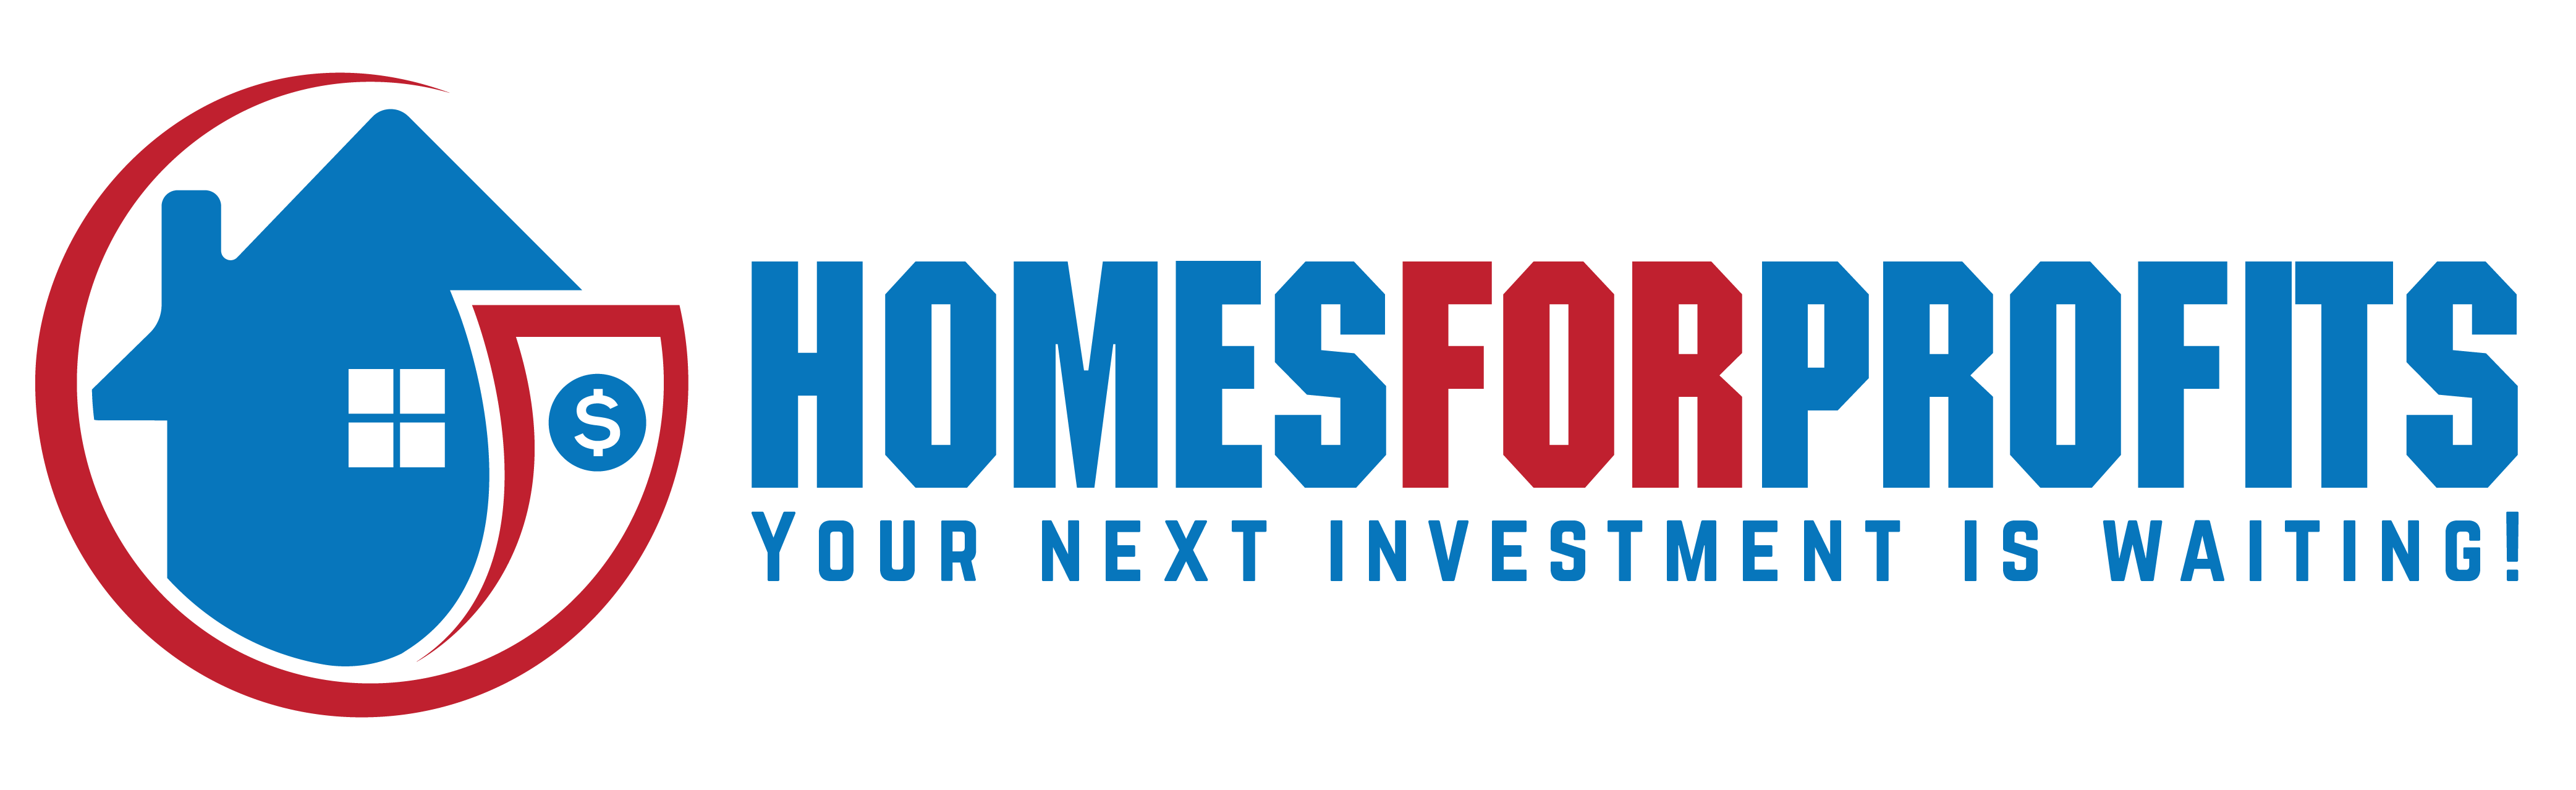 HomesForProfits logo